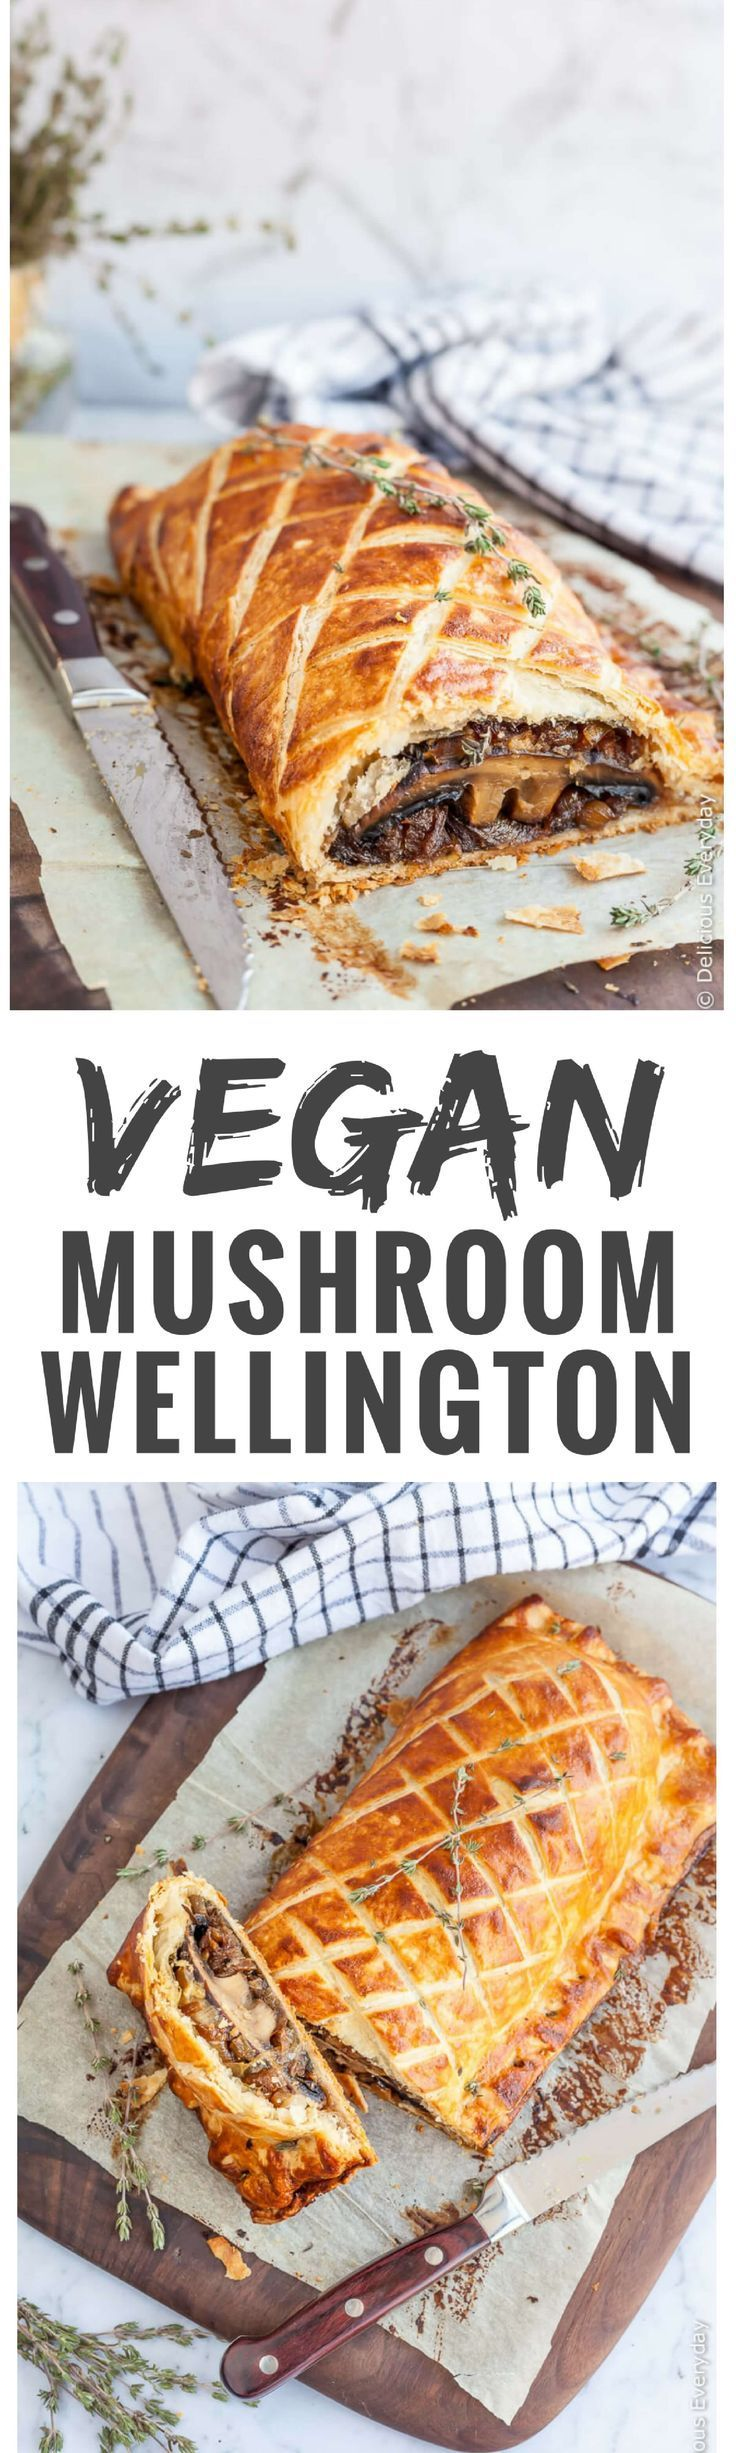 Mushroom Wellington Flaky, Golden and Delicious this Vegan Mushroom Wellington is sure to take center stage at your Christmas feast. via @deliciouseverydayFlaky, Golden and Delicious this Vegan Mushroom Wellington is sure to take center stage at your Christmas feast. via @deliciouseveryday